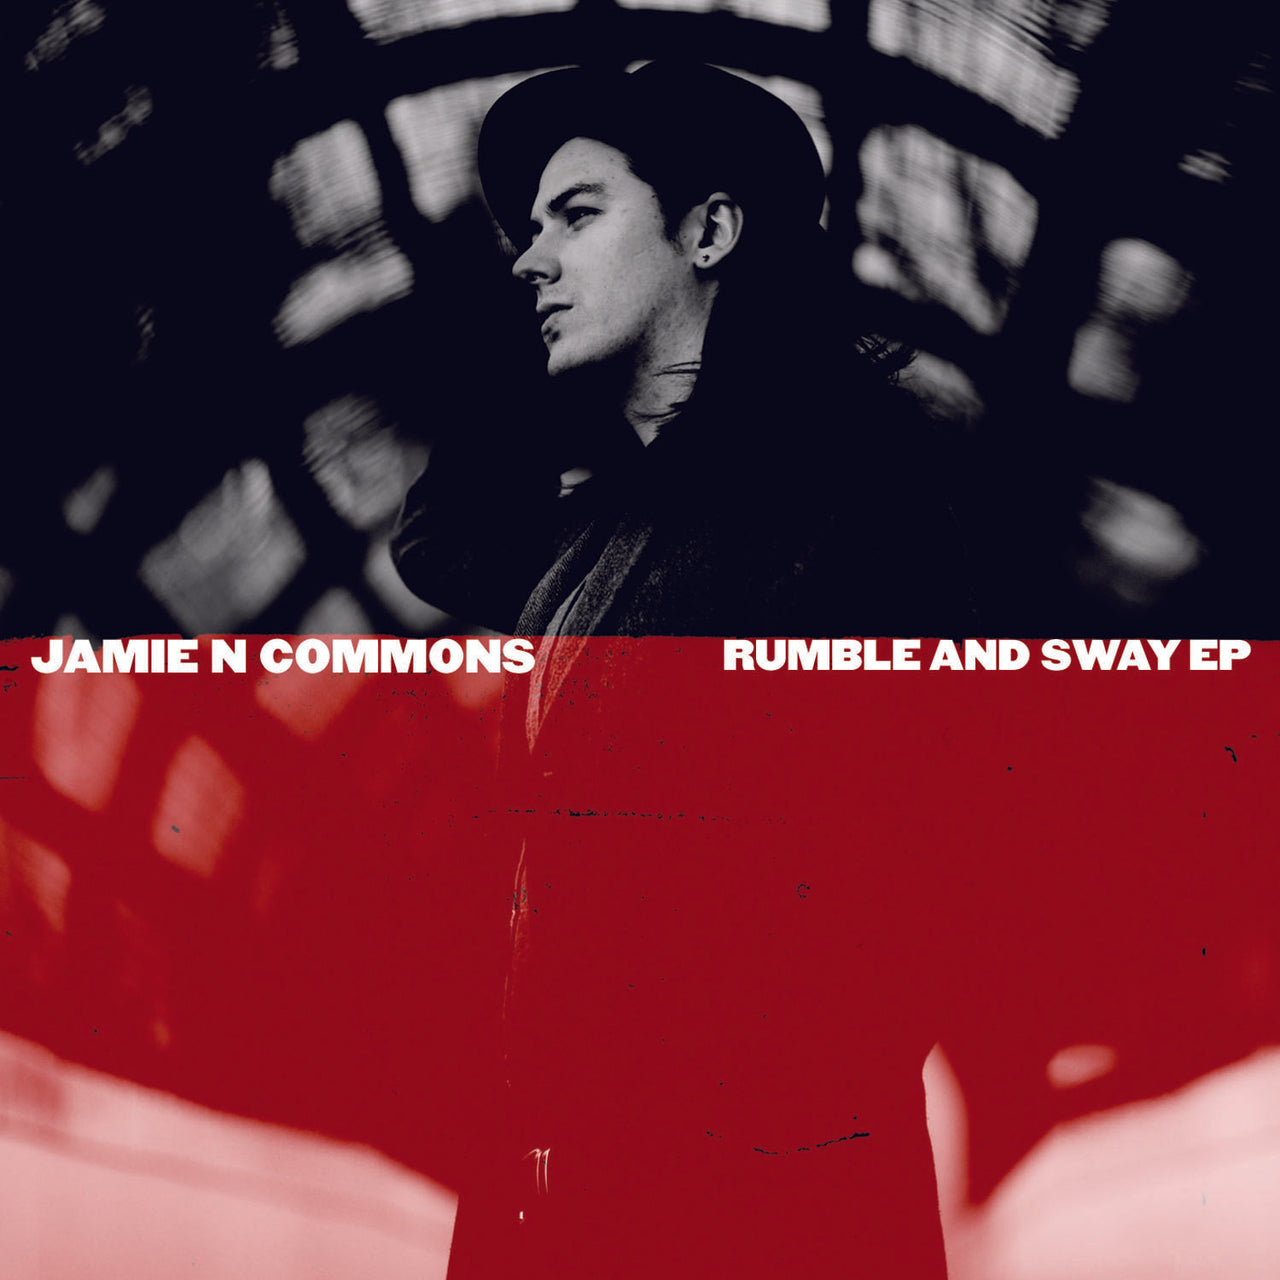 Commons, Jamie N. : Rumble & Sway EP  CD single